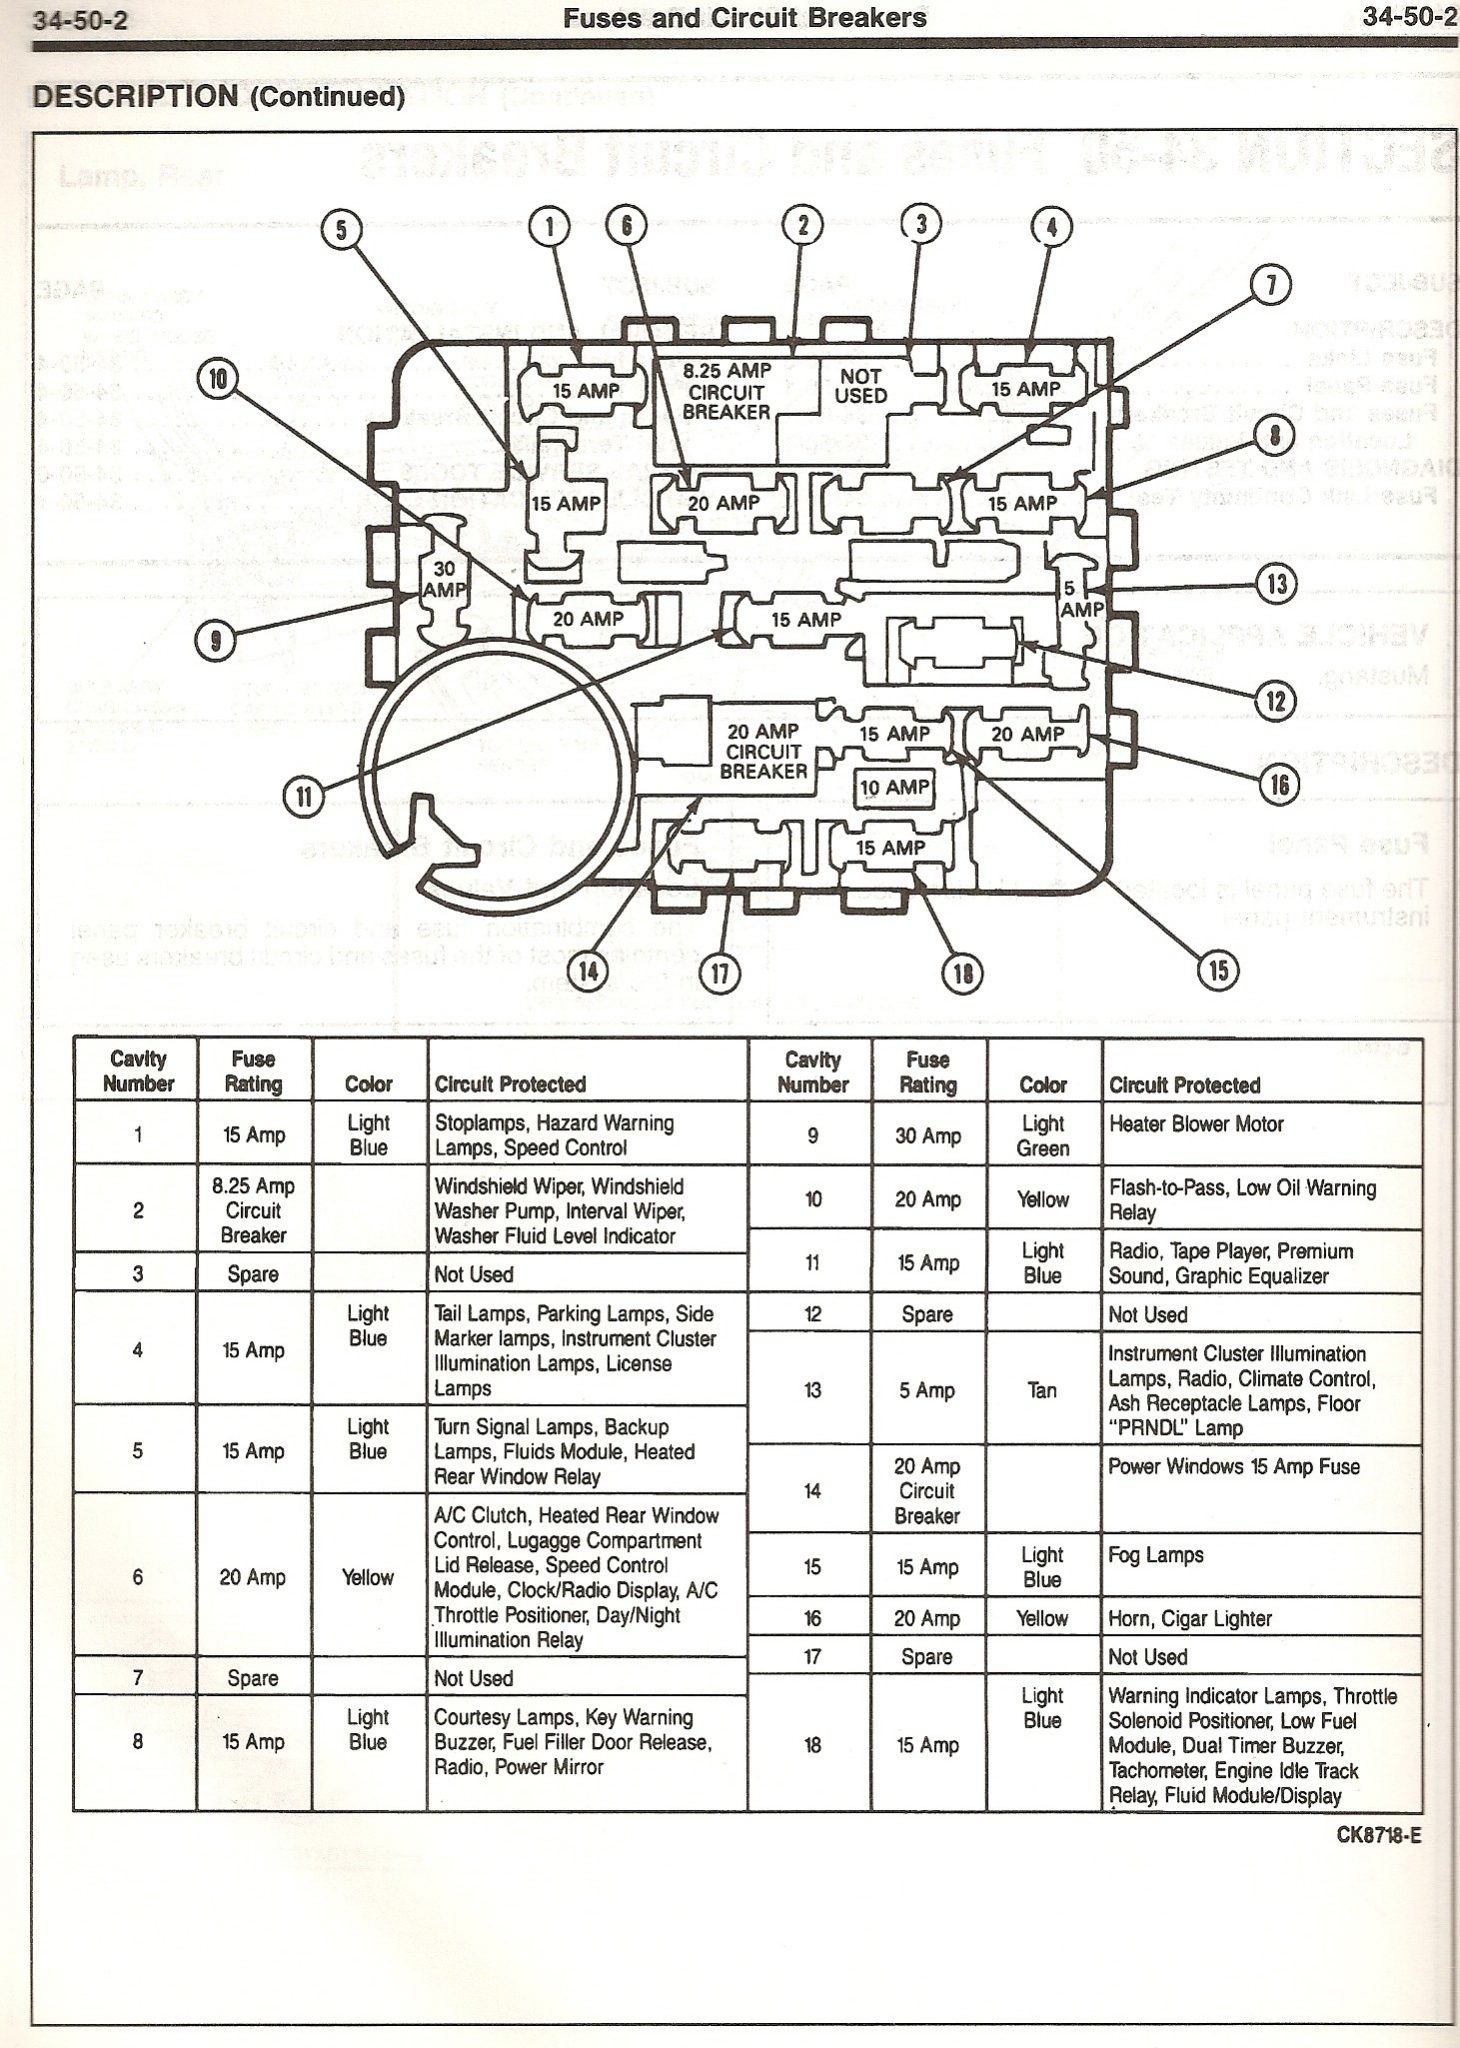 medium resolution of 93 crown victoria fuse box simple wiring schema 2007 crown victoria fuse box diagram 1990 crown victoria fuse box diagram